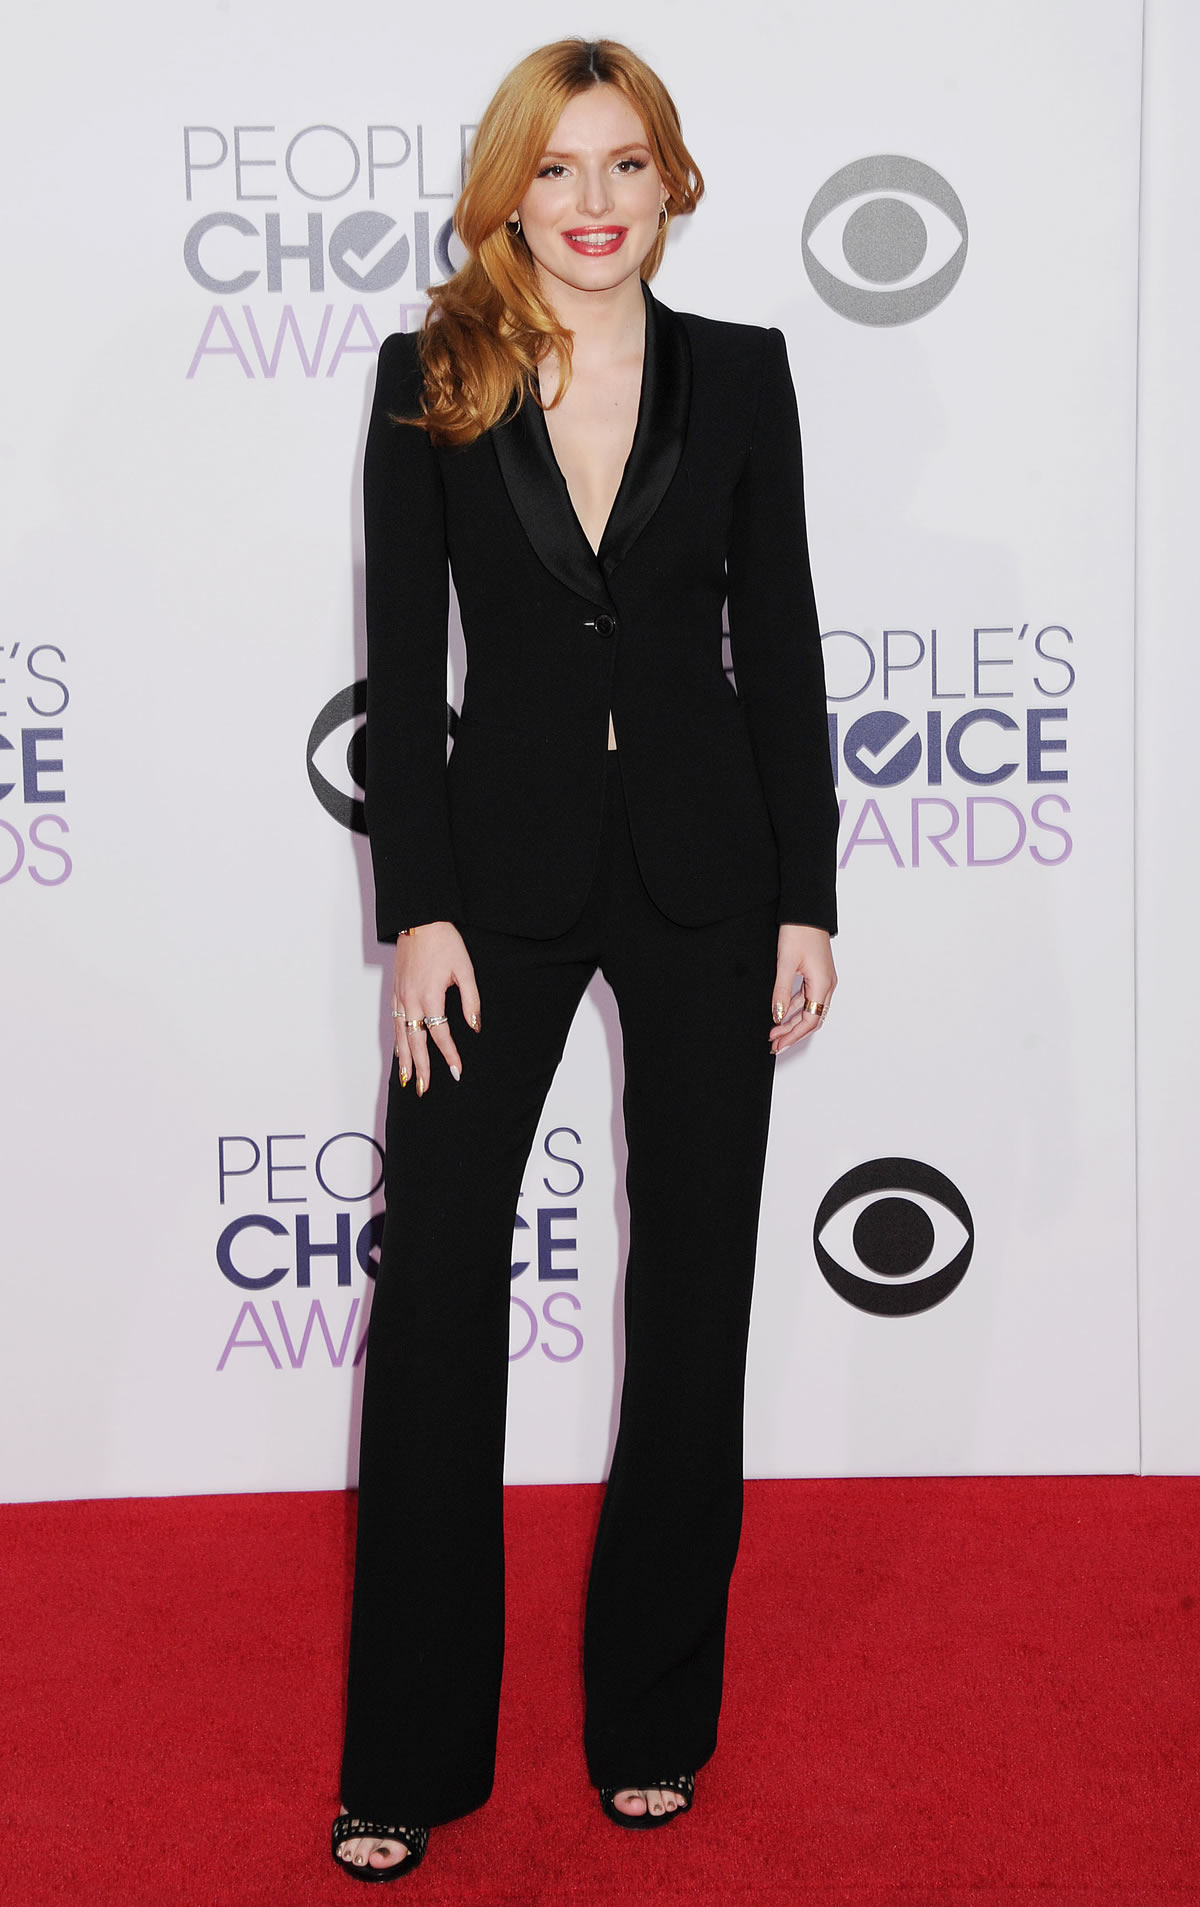 Bella Thorne in a Black Armani suit.